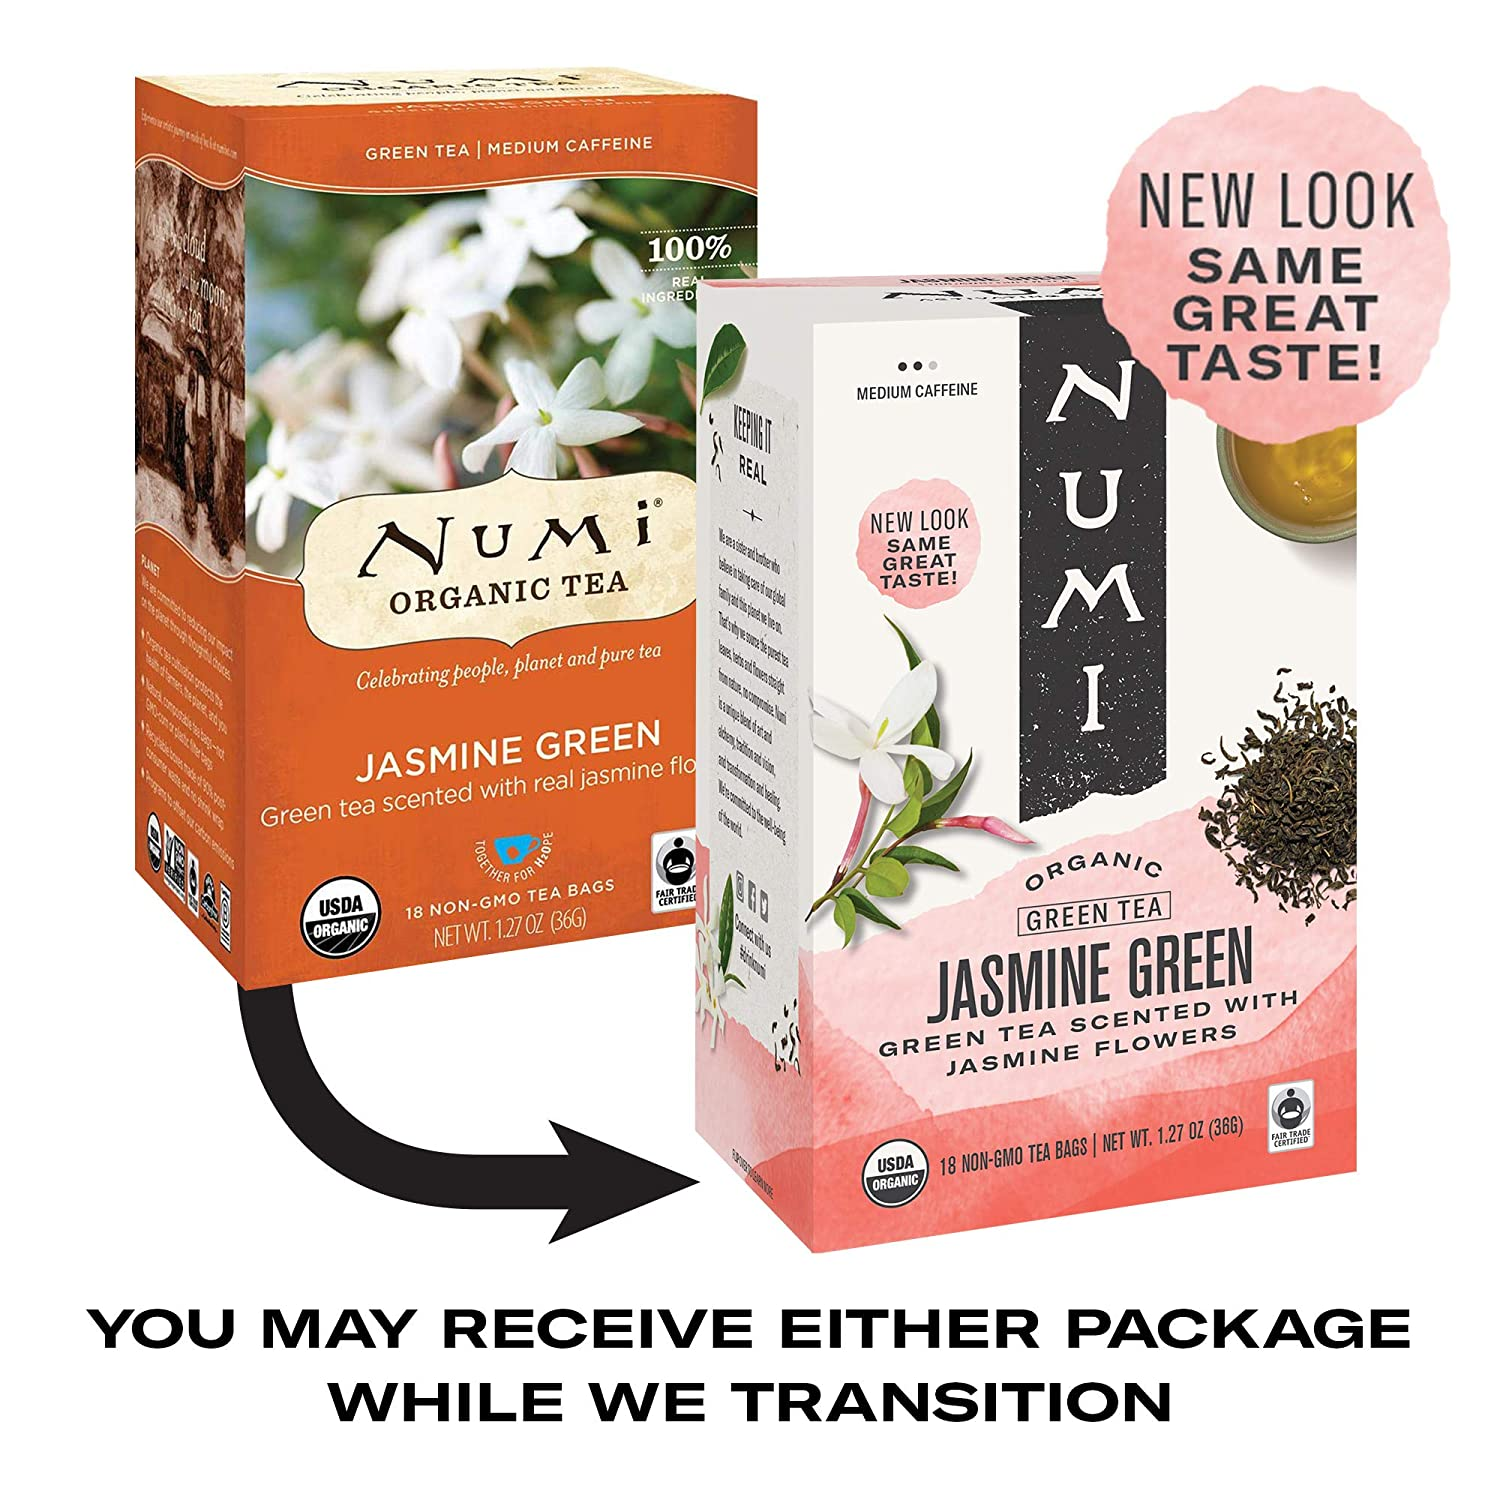 Numi Organic Tea Jasmine Green, 18 Count (Pack of 3) Box of Tea Bags